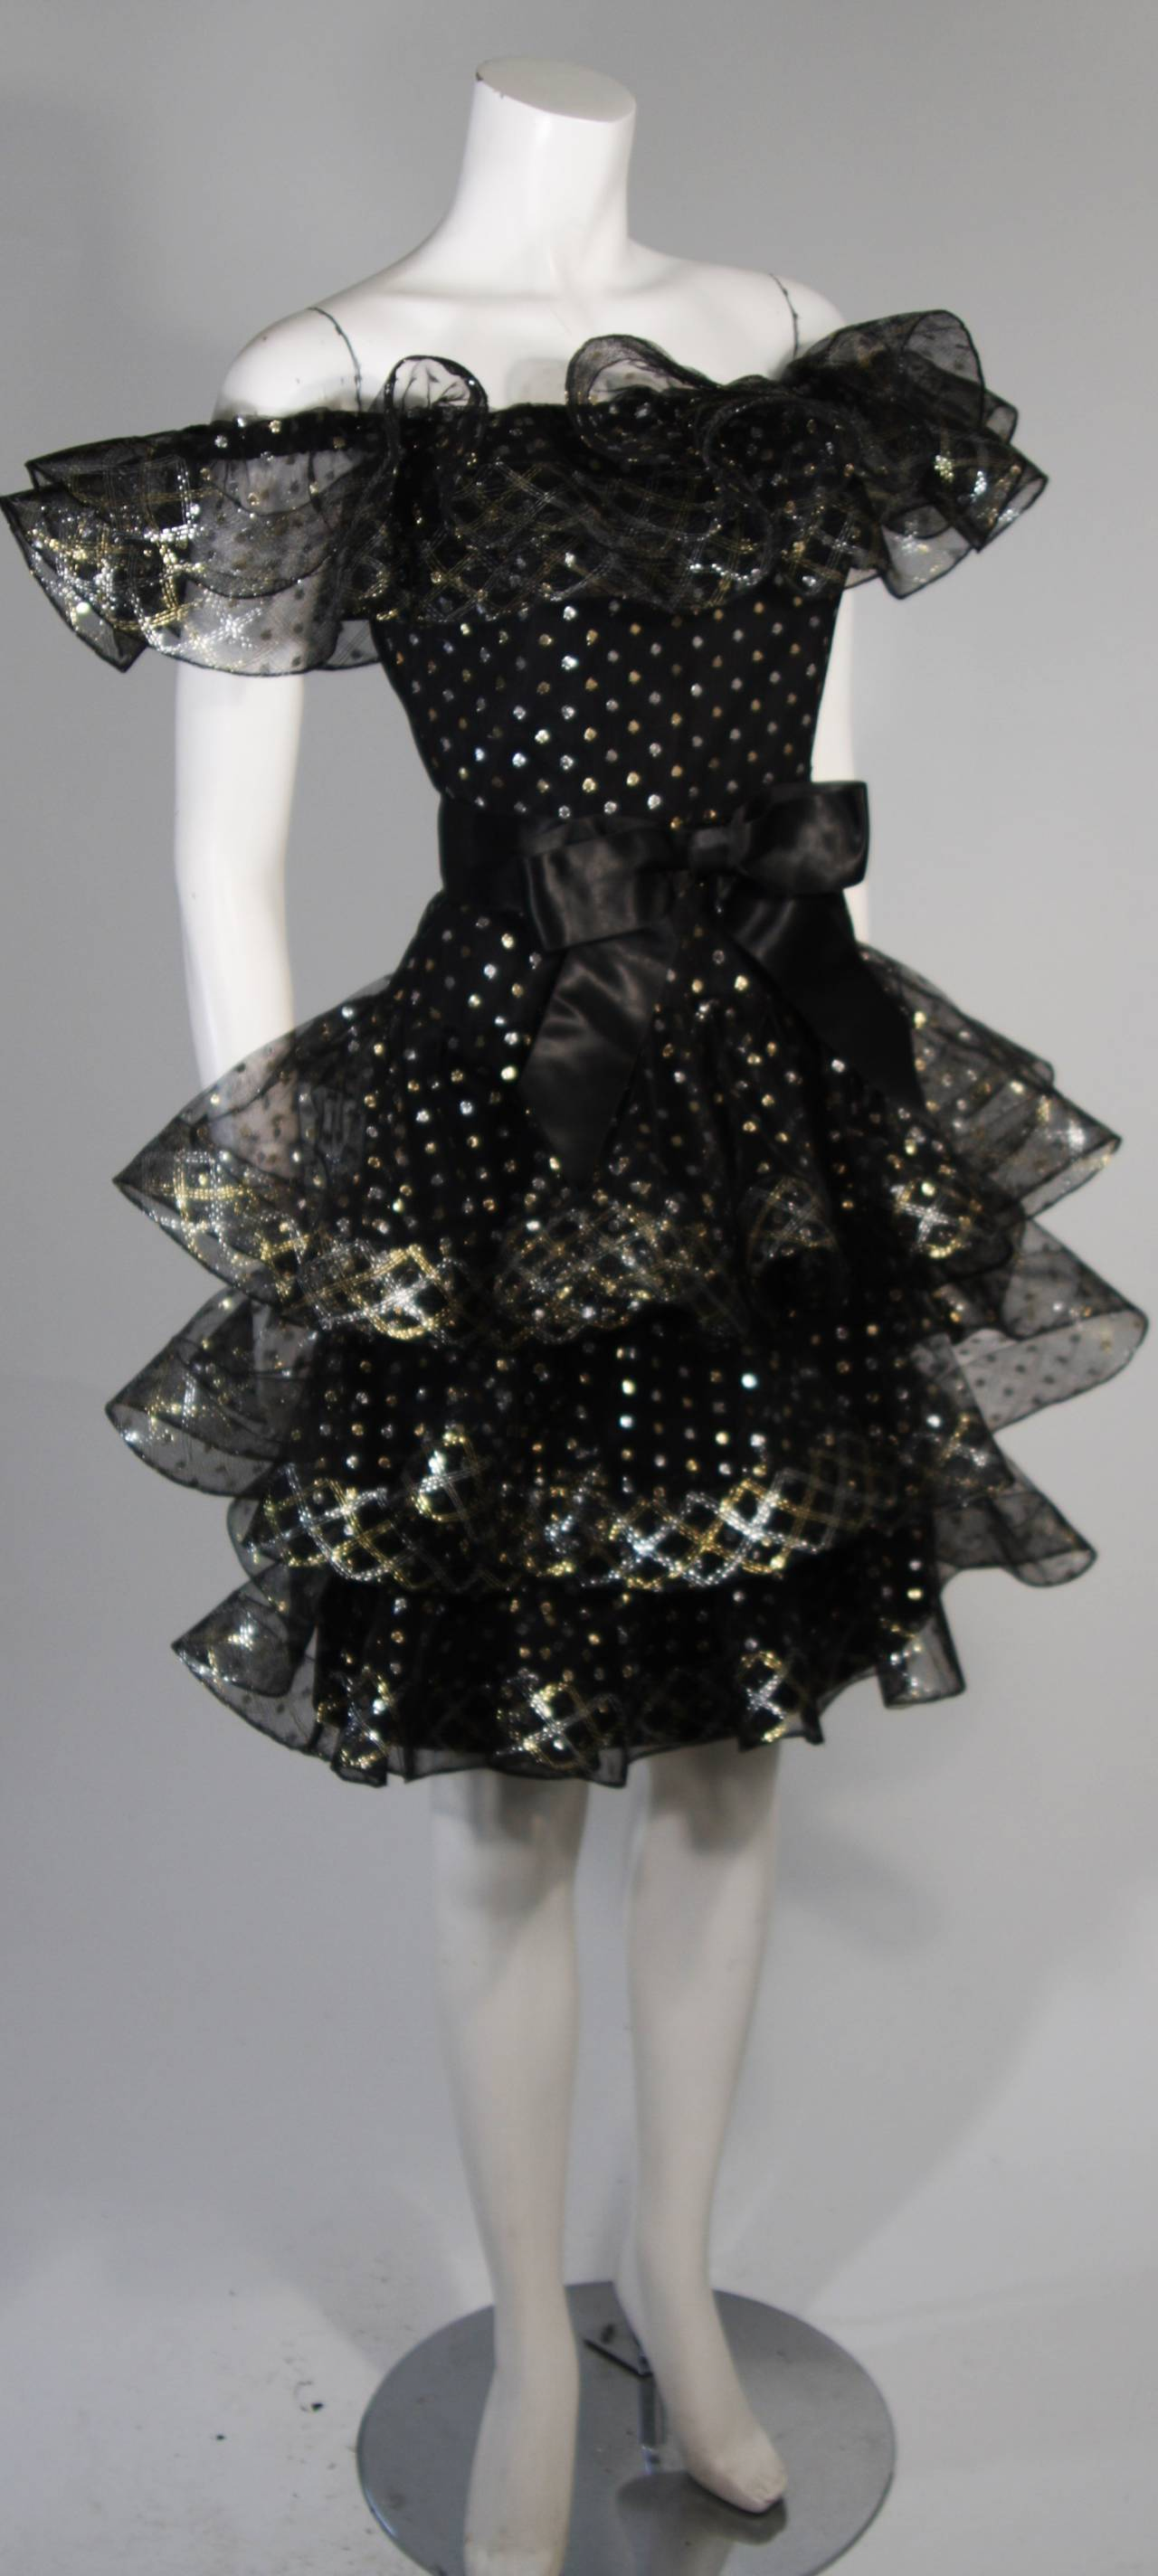 Victor Costa Black with Gold and Silver Metallic Accents Cocktail Dress Size 2 5